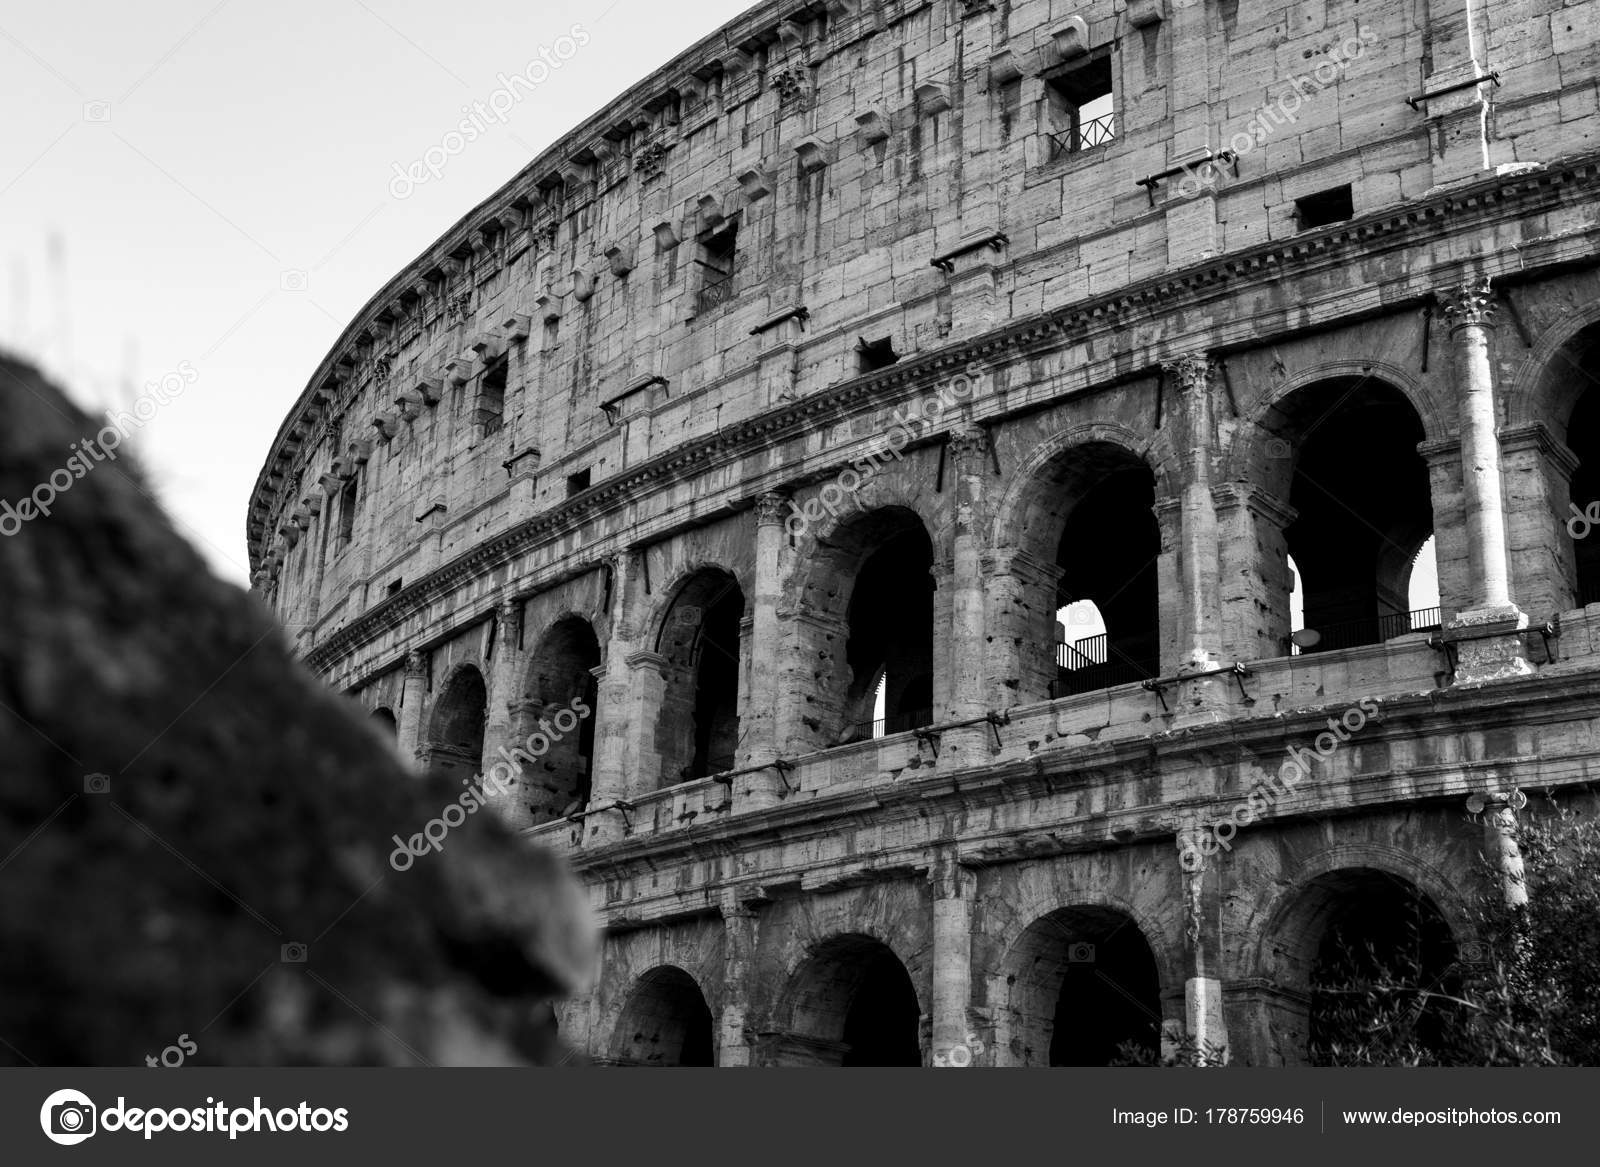 Black and white photo of the part of the wall of colosseum coliseum in rome italy at sunset stock image